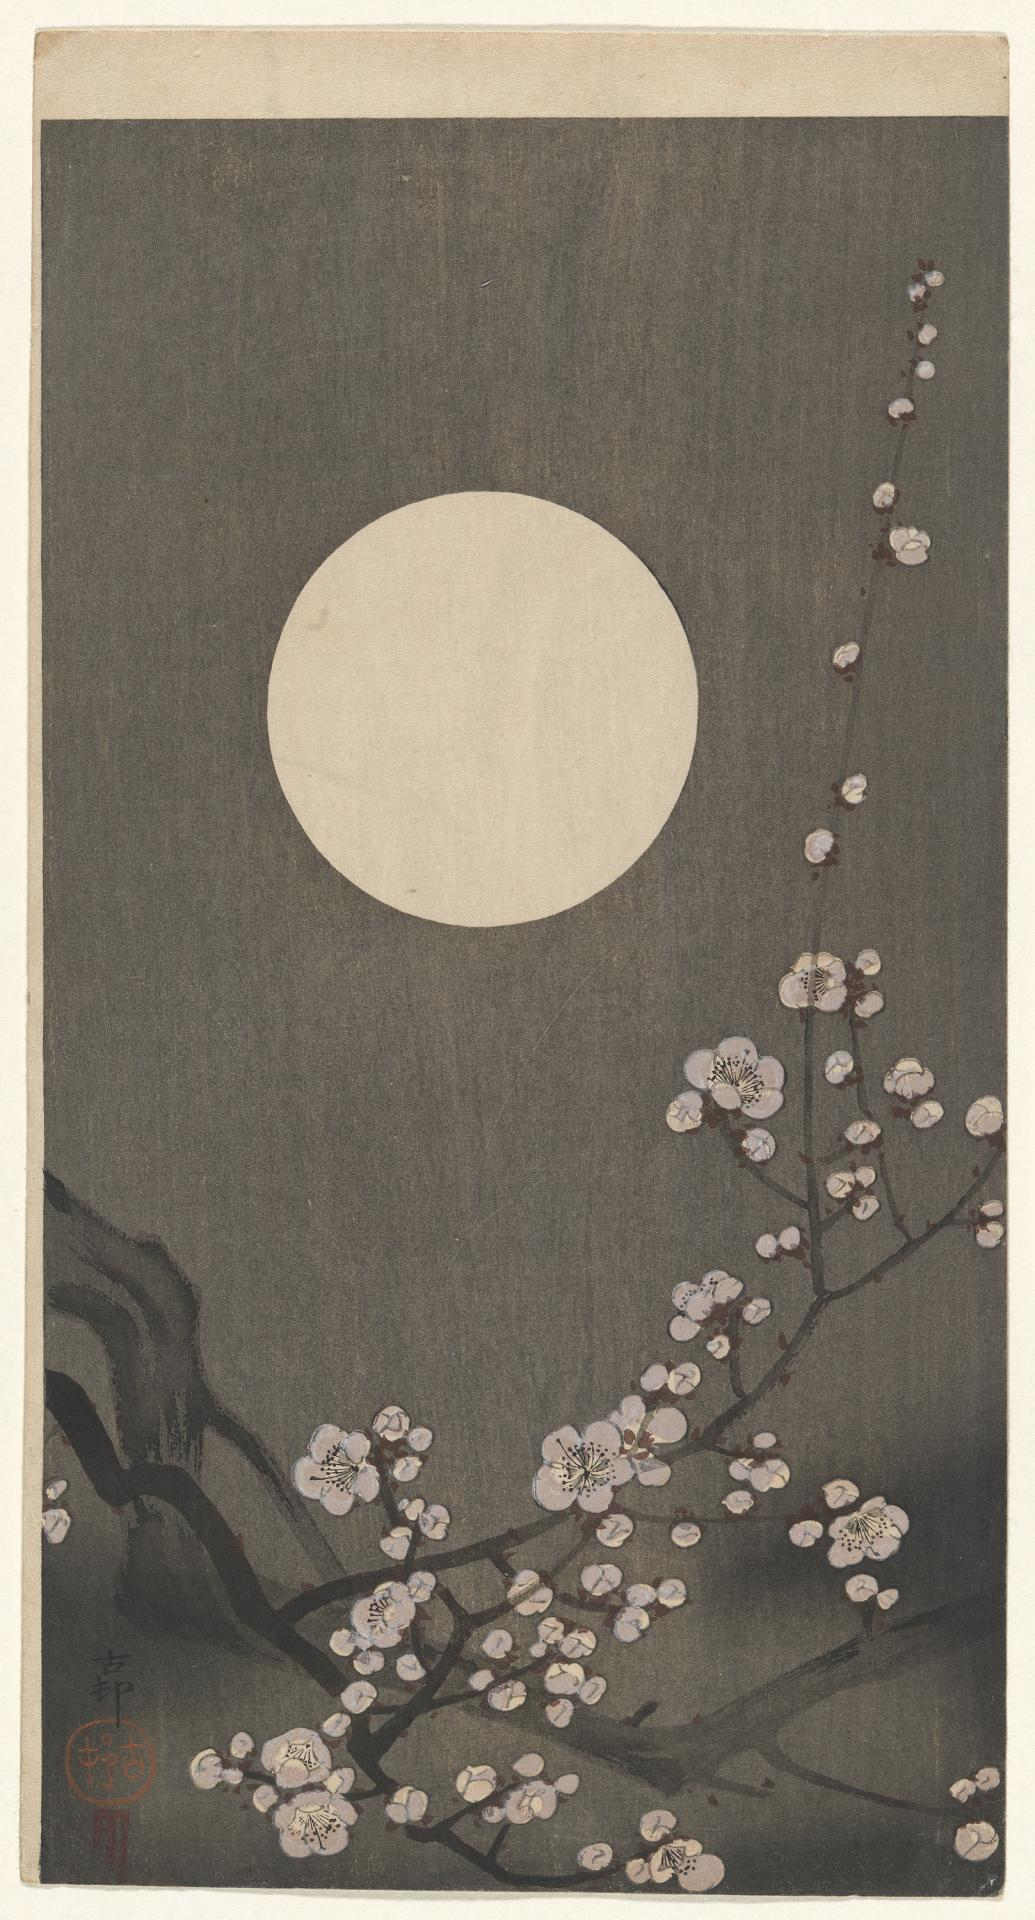 Plum blossoms and the moon